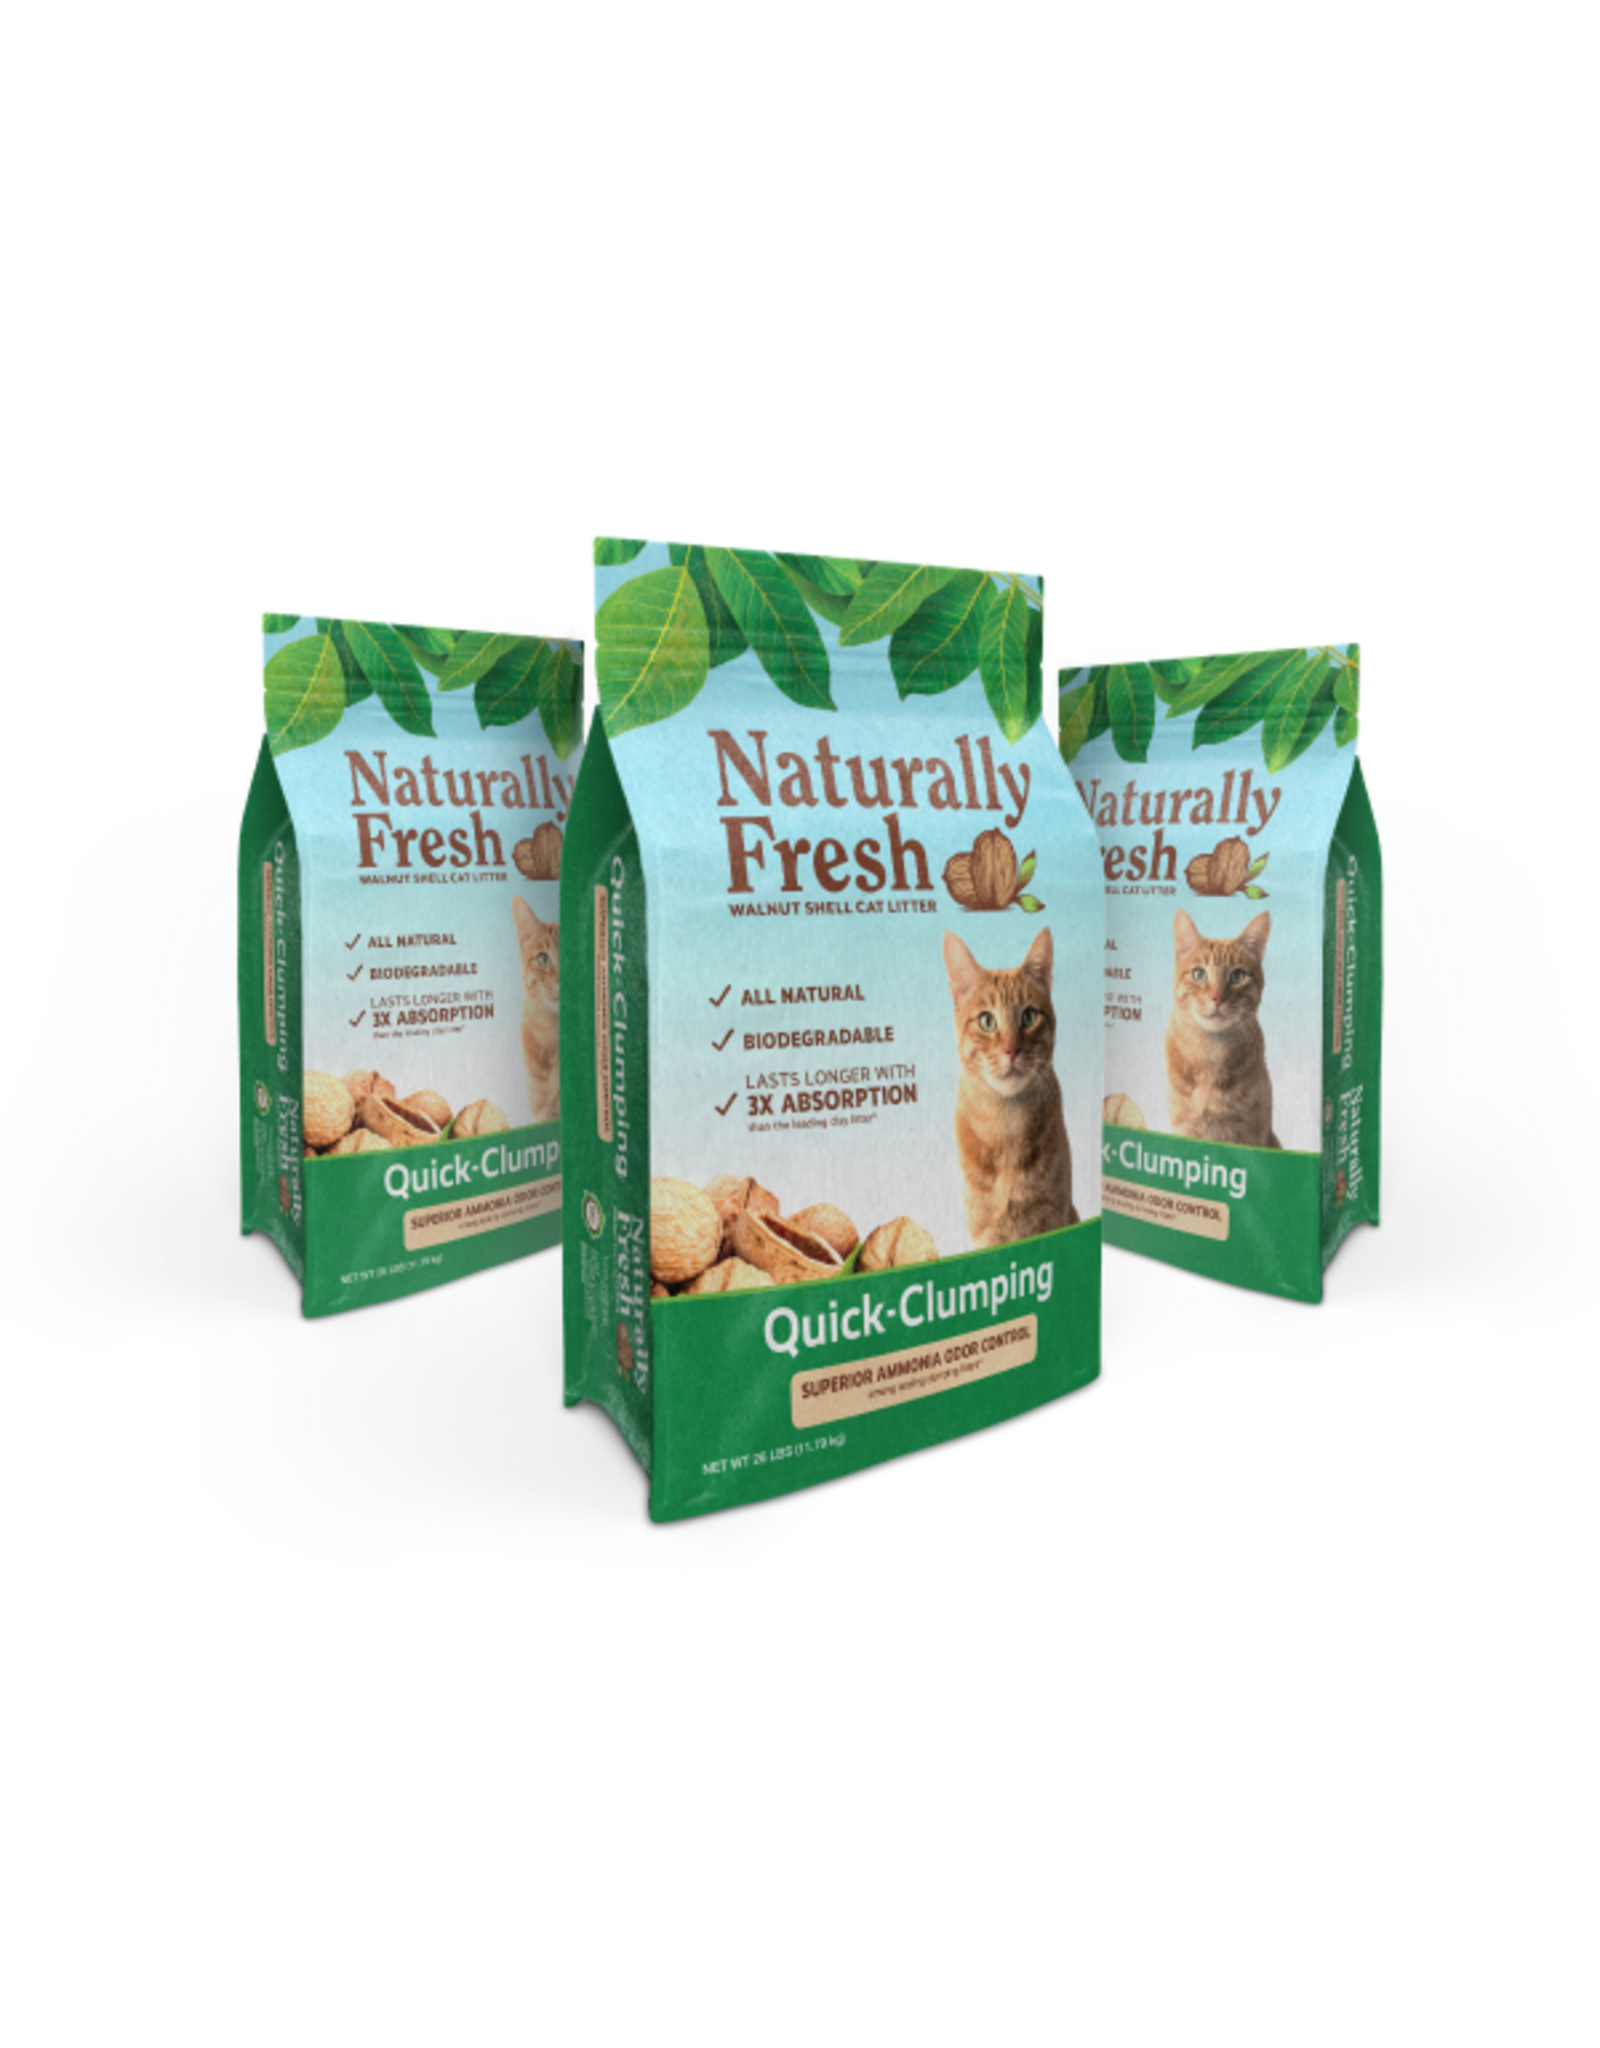 Eco-Shell Naturally Fresh Walnut Based Unscented Quick Clumping Litter